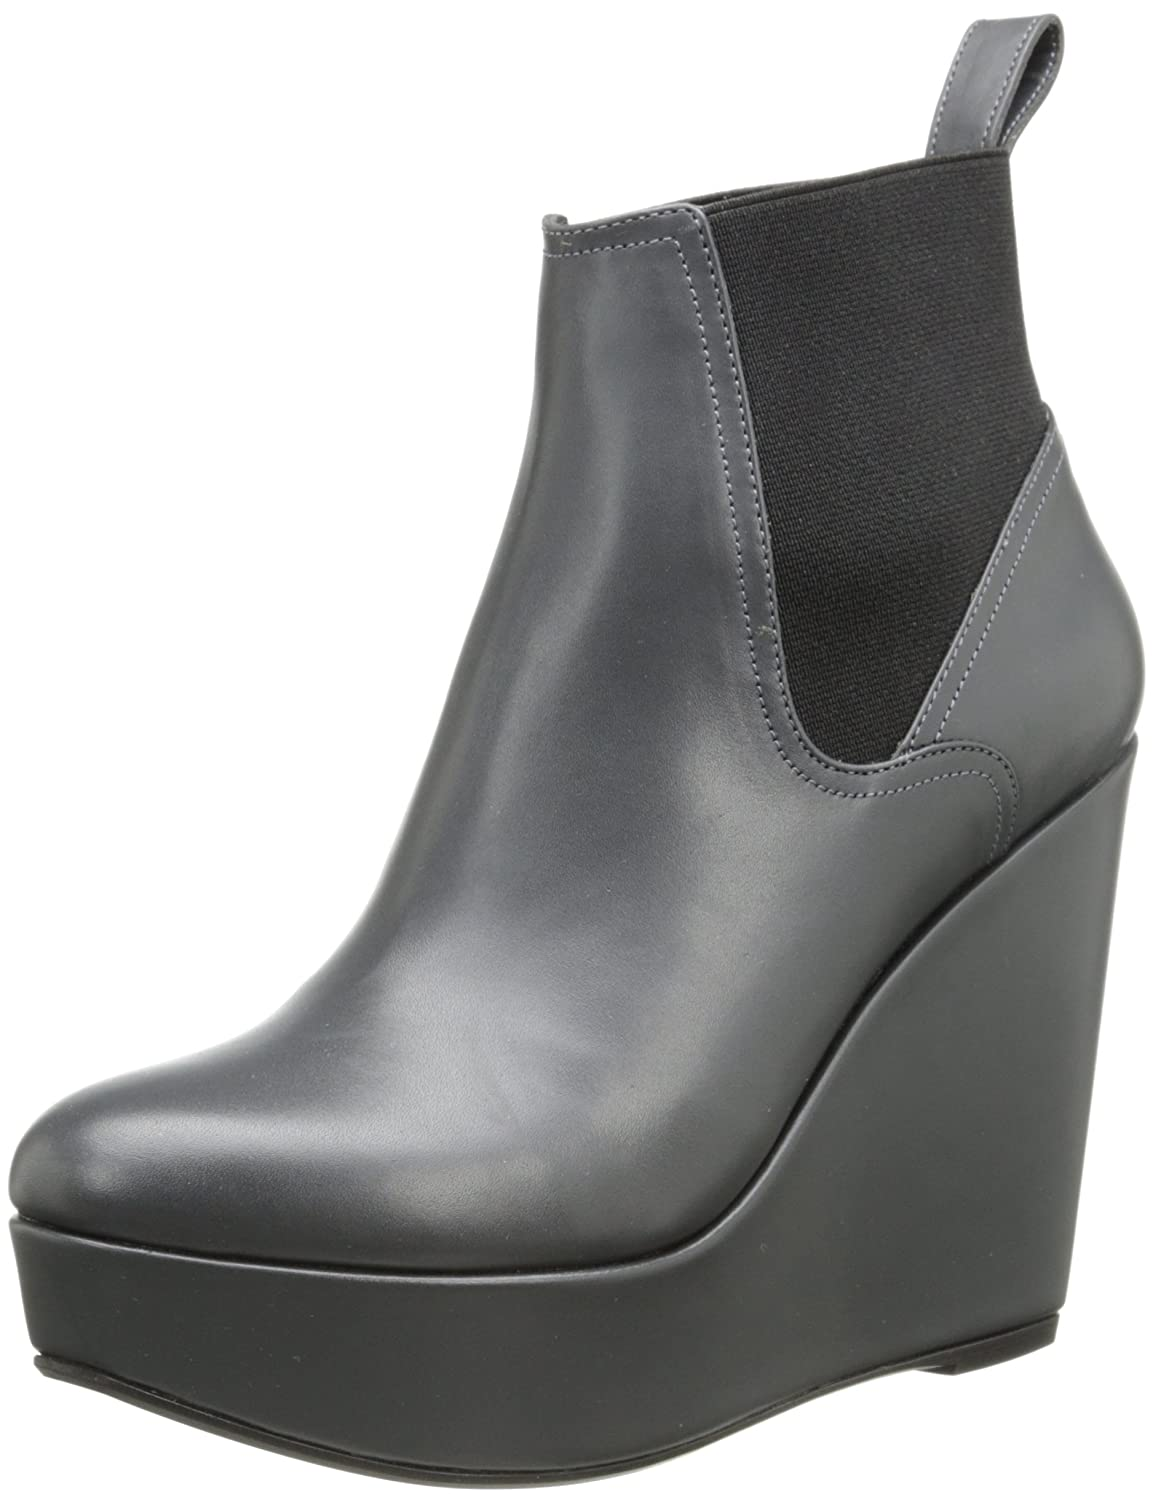 Robert Clergerie Women's Fille Wedge Pump Grey 36.5 EU/6 B US